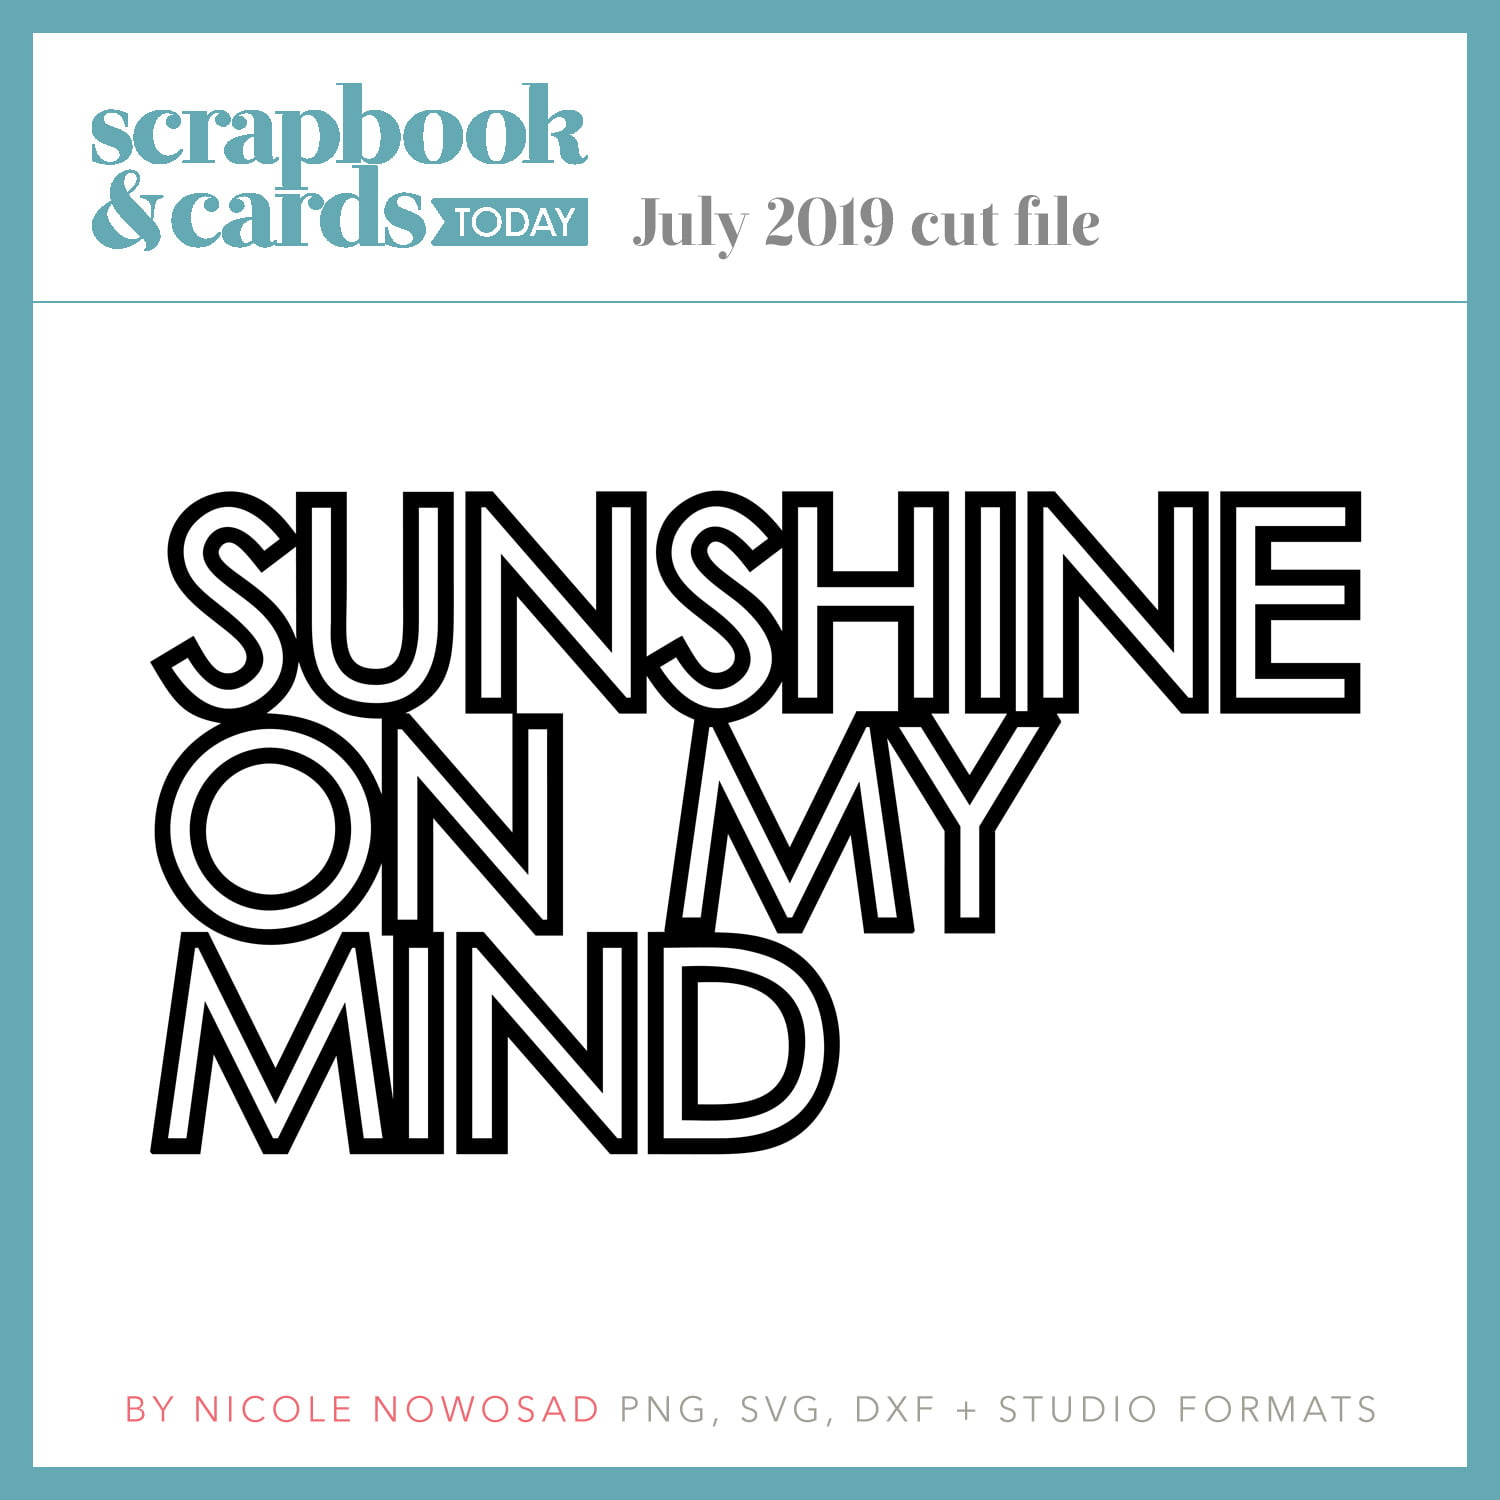 Scrapbook & Cards Today July 2019 free cut file